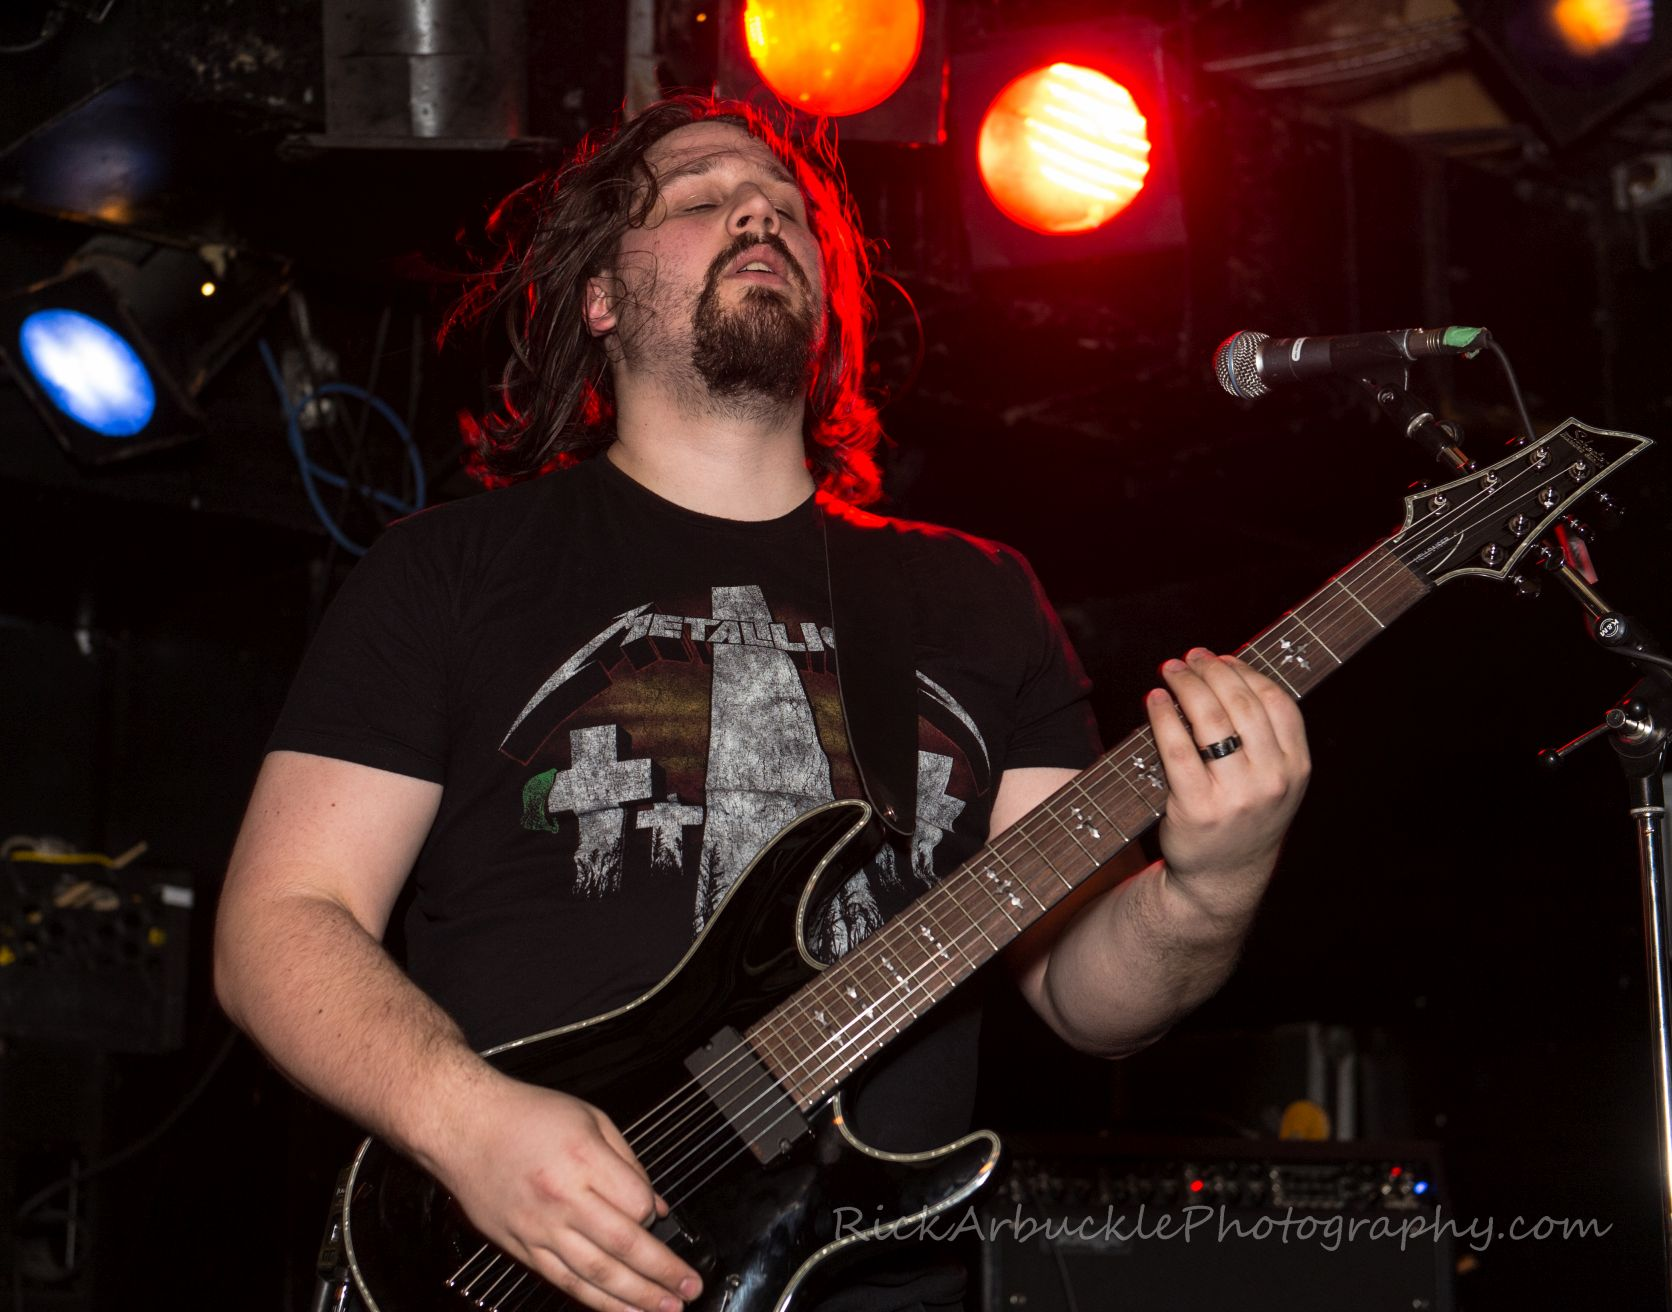 Aenigma at Zaphod's 33